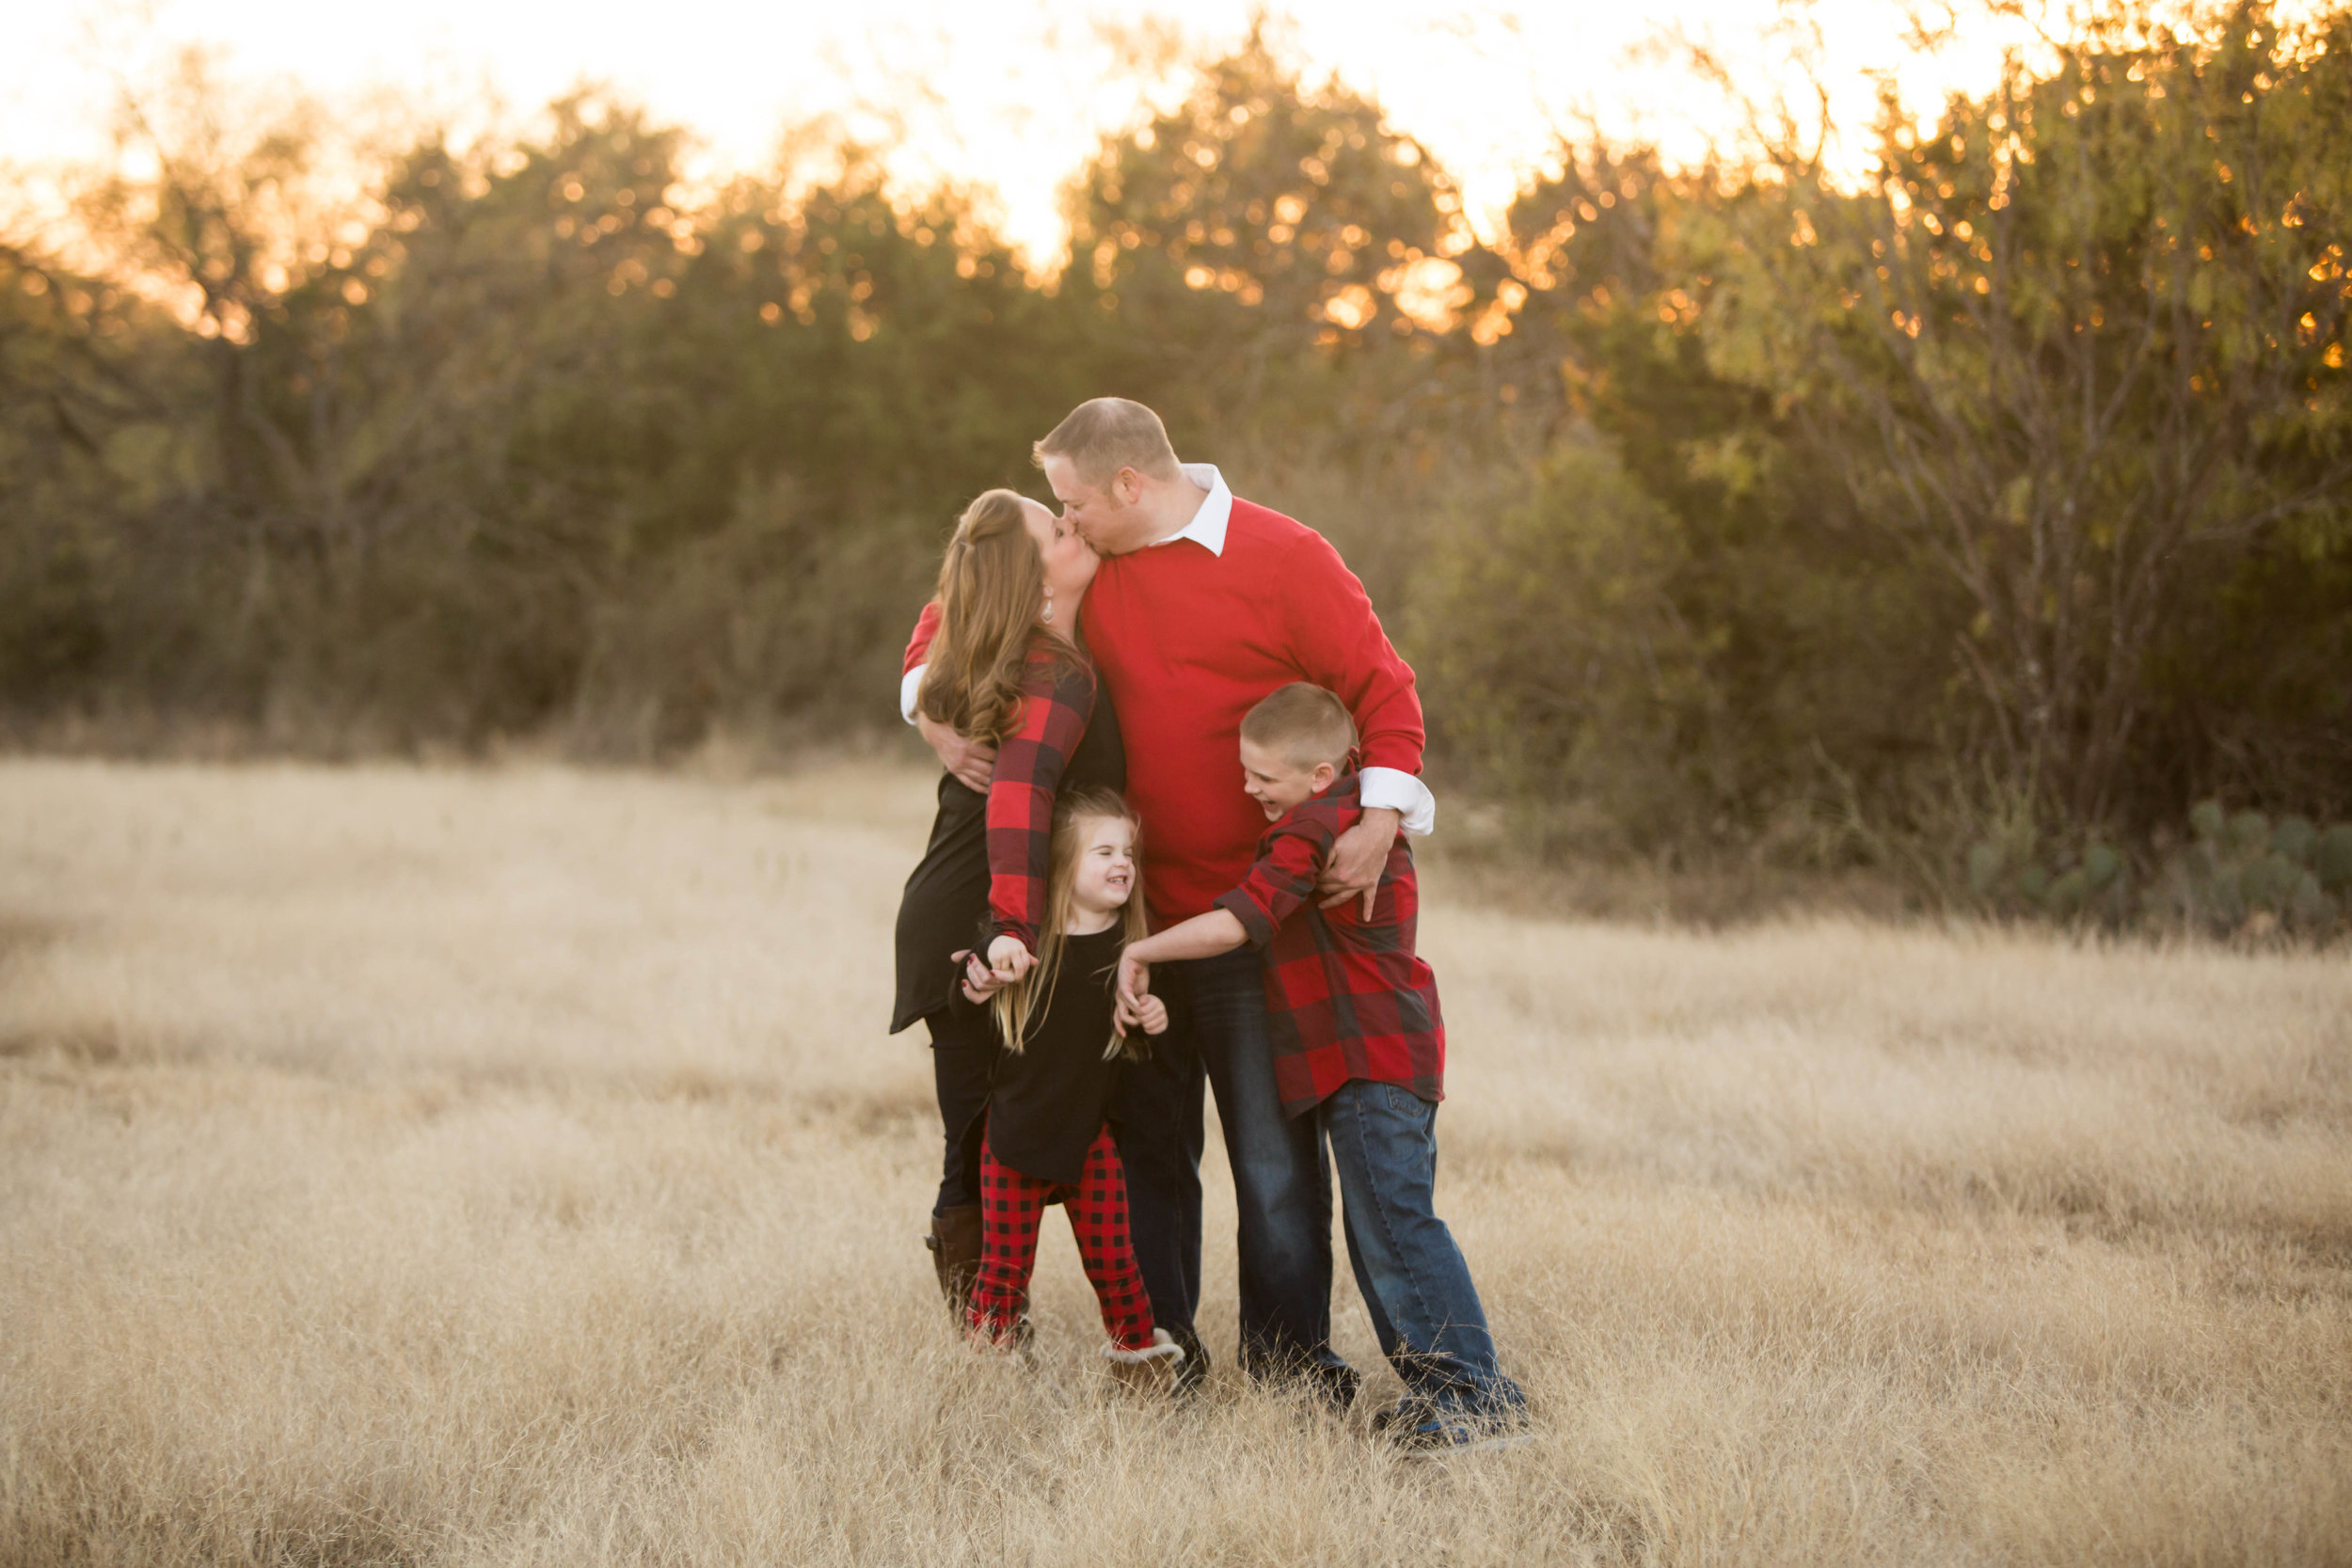 Marble_Falls_Sternad_Family_Photographer_Jenna_Petty_07.jpg